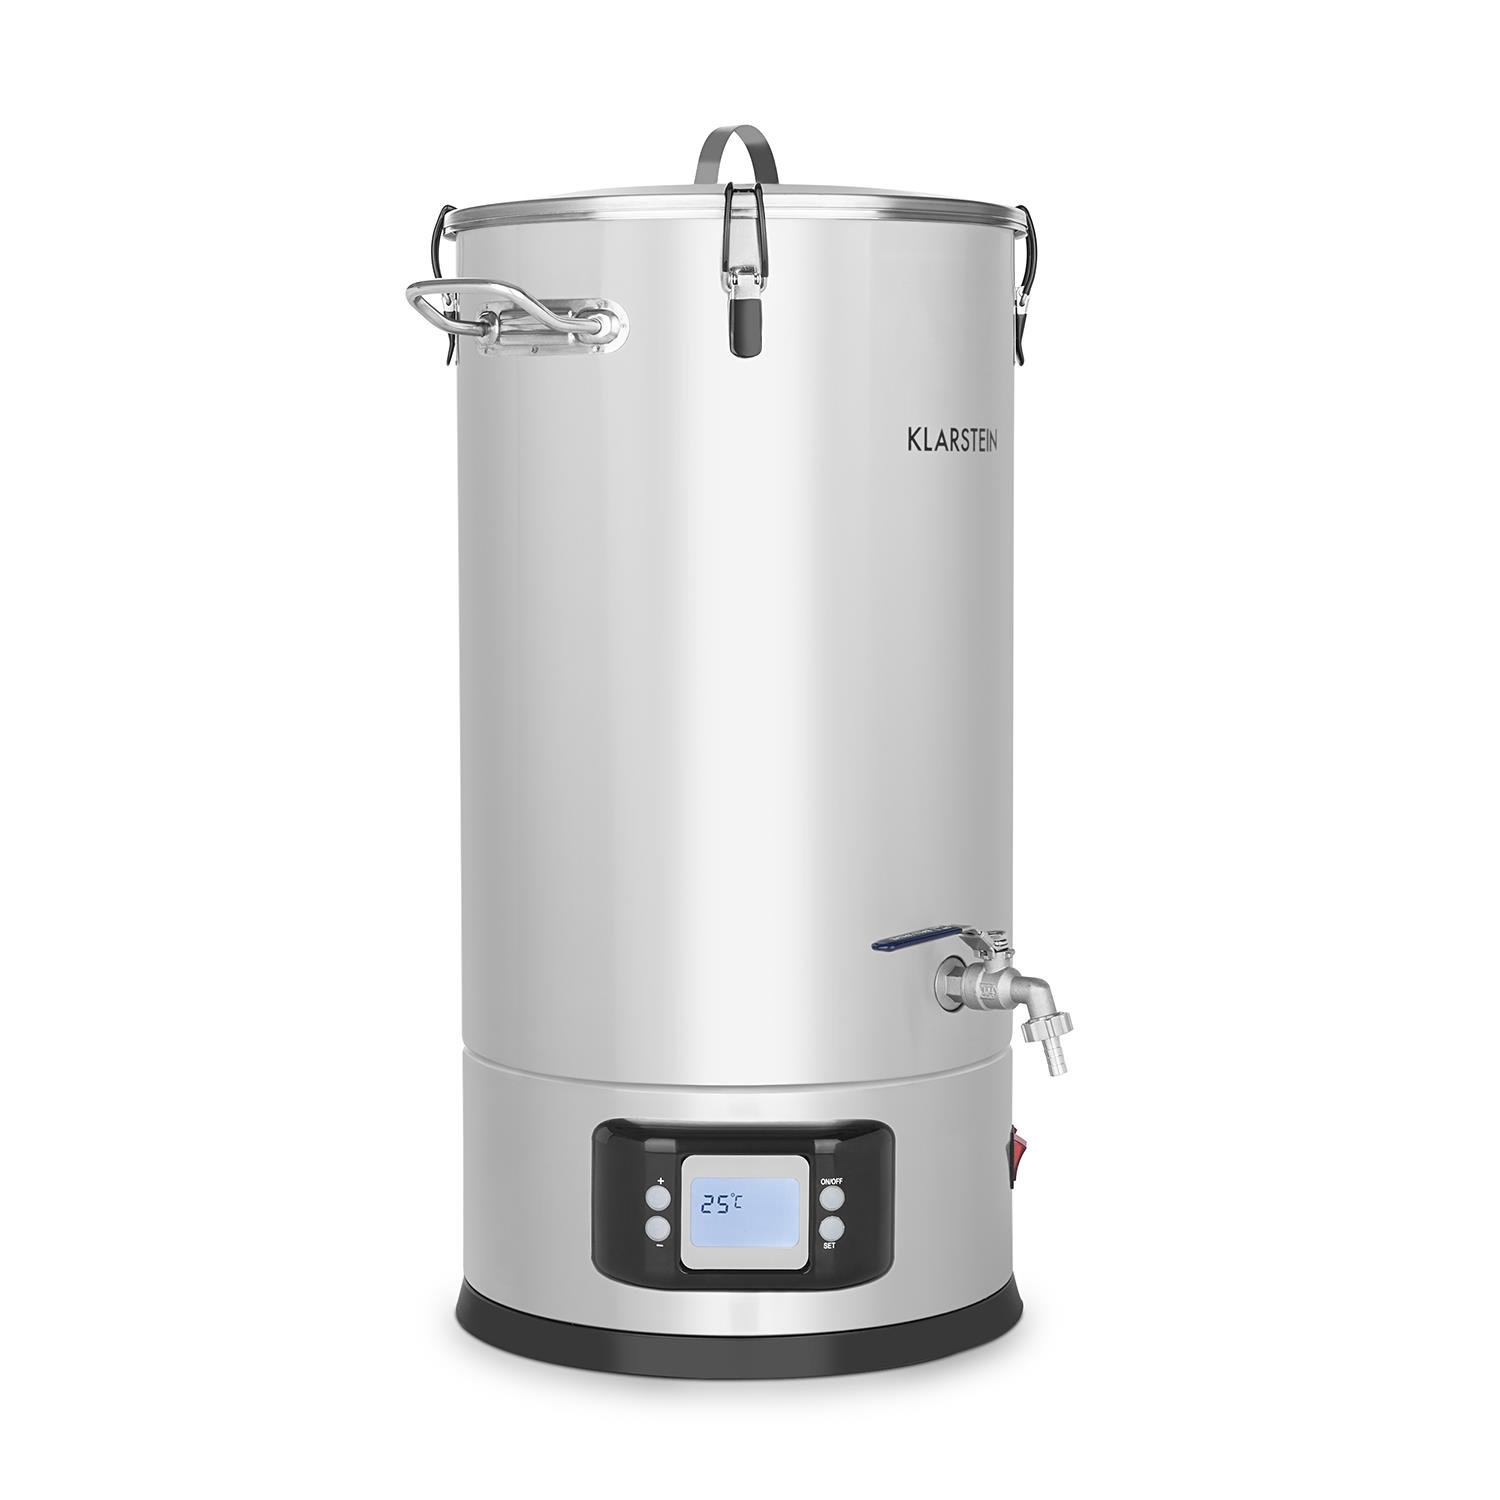 Klarstein Maischfest • Beer Brewing Device • Mash Tun • 5-Piece Set • 1500 and 3000 Watts Power • 25-litre Capacity • LCD Display and Touch Control Panel • Temperature • Stainless Steel by KLARSTEIN (Image #1)